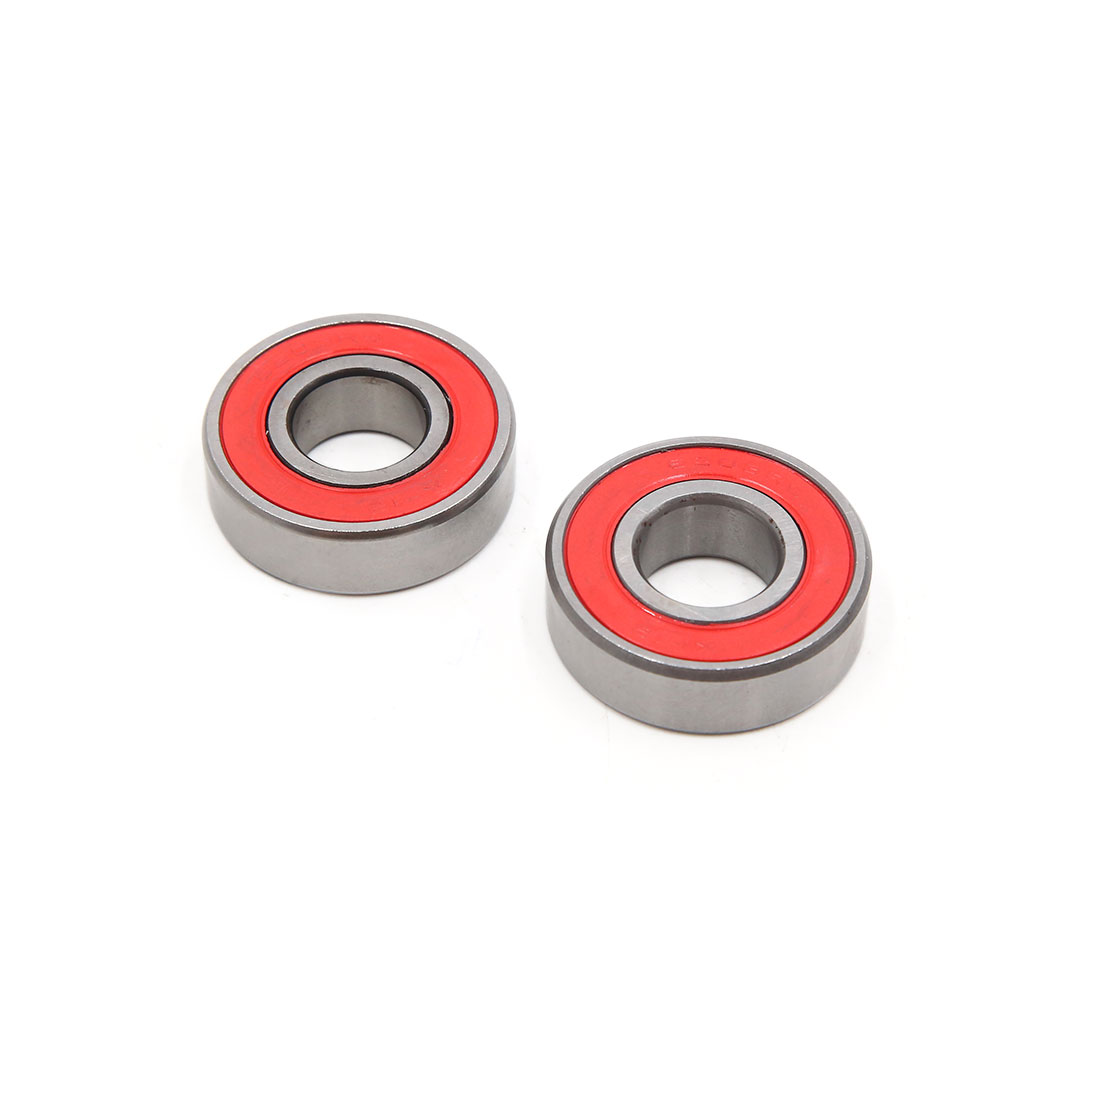 2pcs 6203-2RS Scooter Motorcycle Sealed Deep Groove Ball Bearing 40 x 17 x 12mm